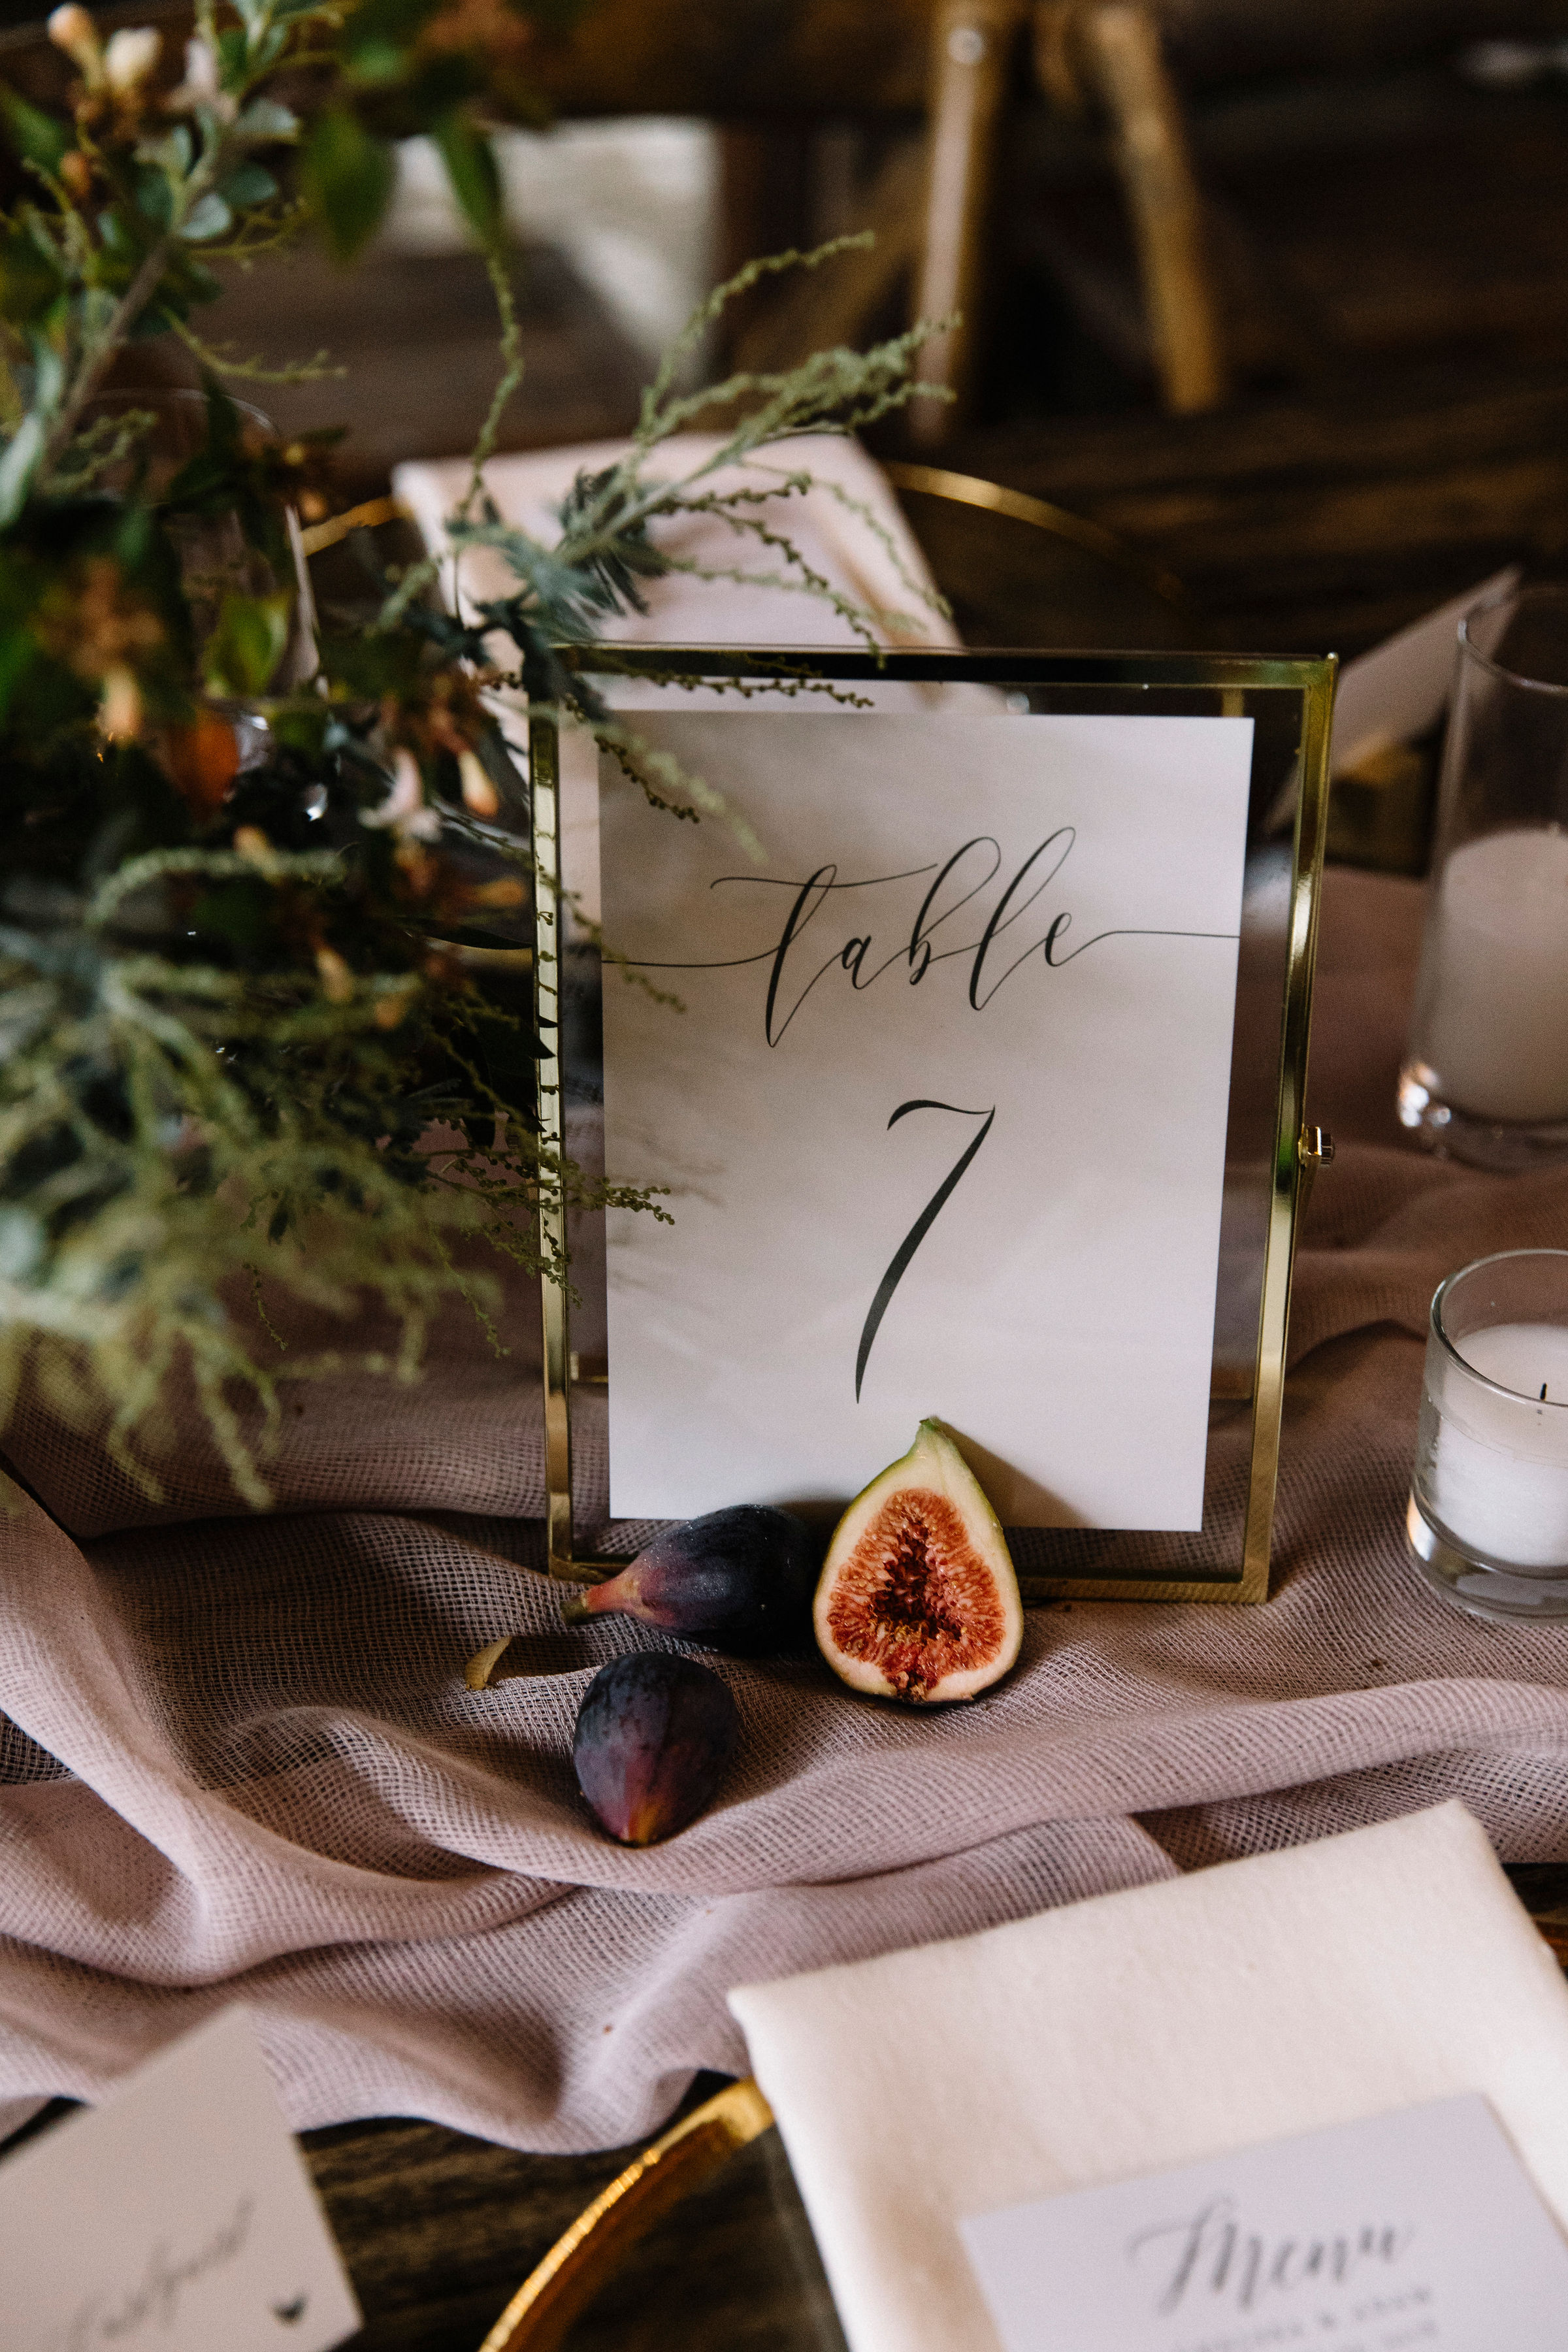 Discreet and beautiful table numbers in gold frames with cut fruit by Venn Floral photographed by Lucille Lawrence.